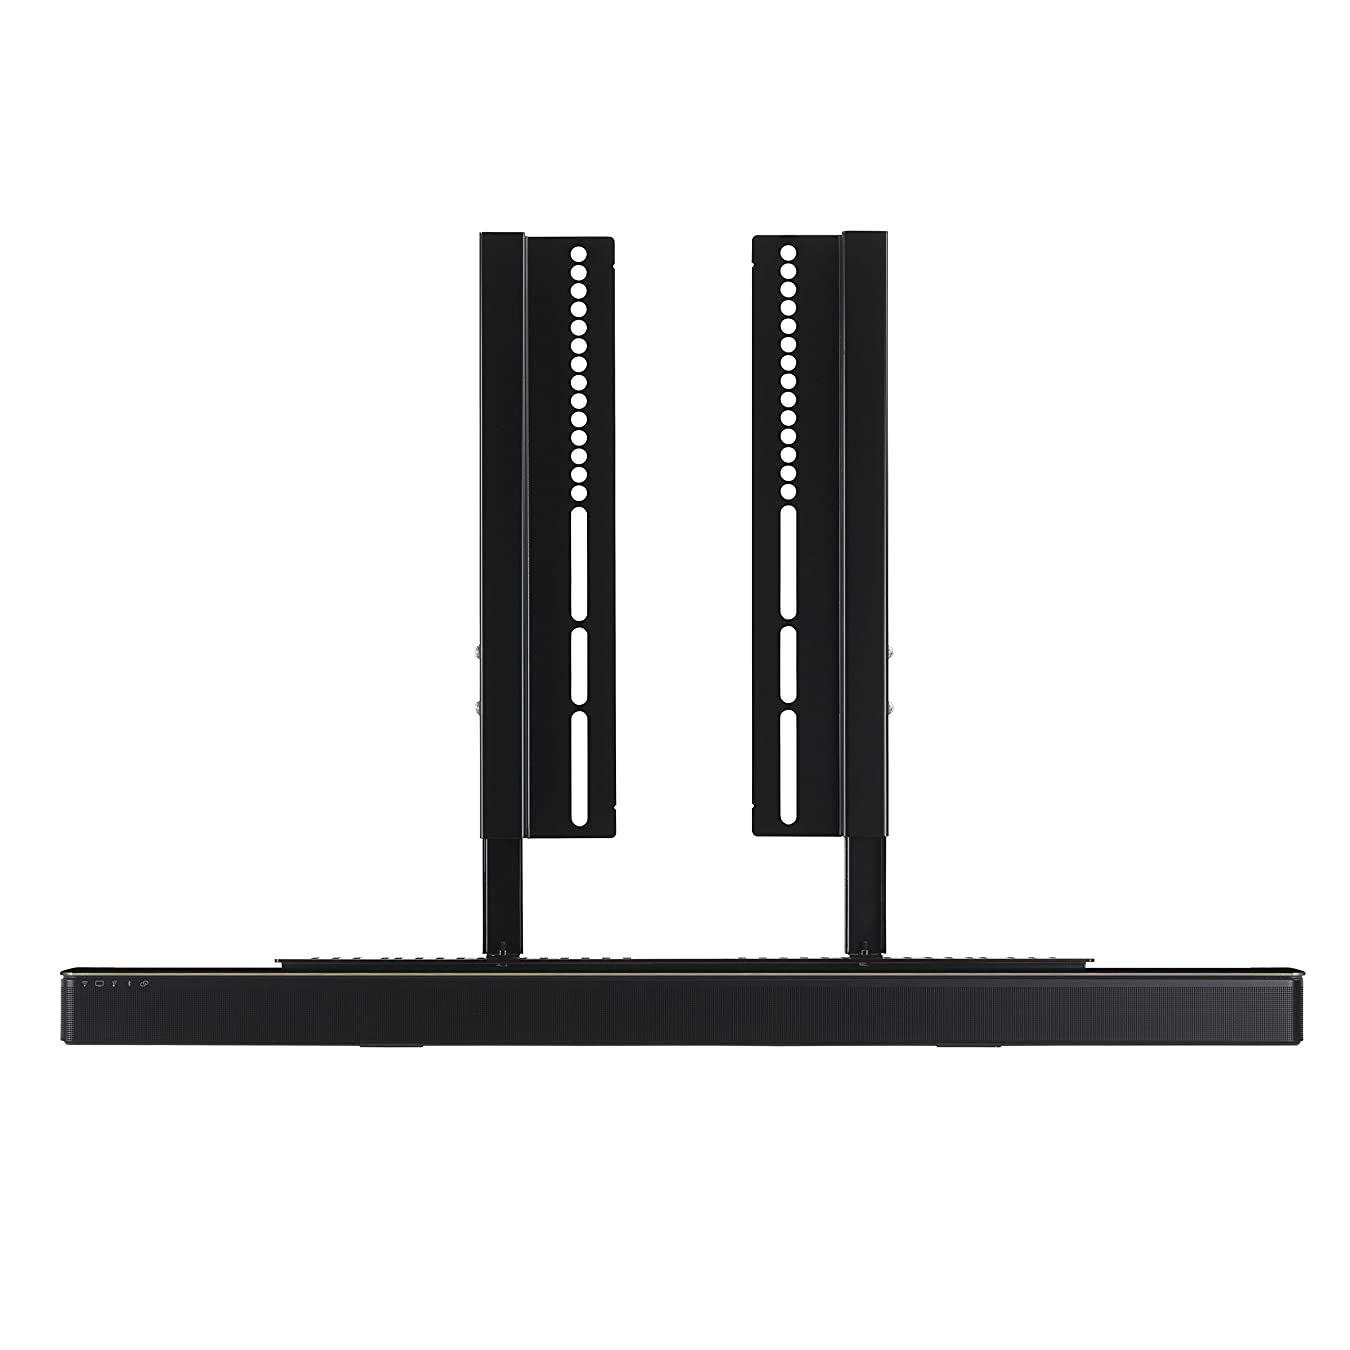 ダーリン血まみれ降臨SoundXtra TV Mount Attachment for Bose SoundTouch 300,ブラック